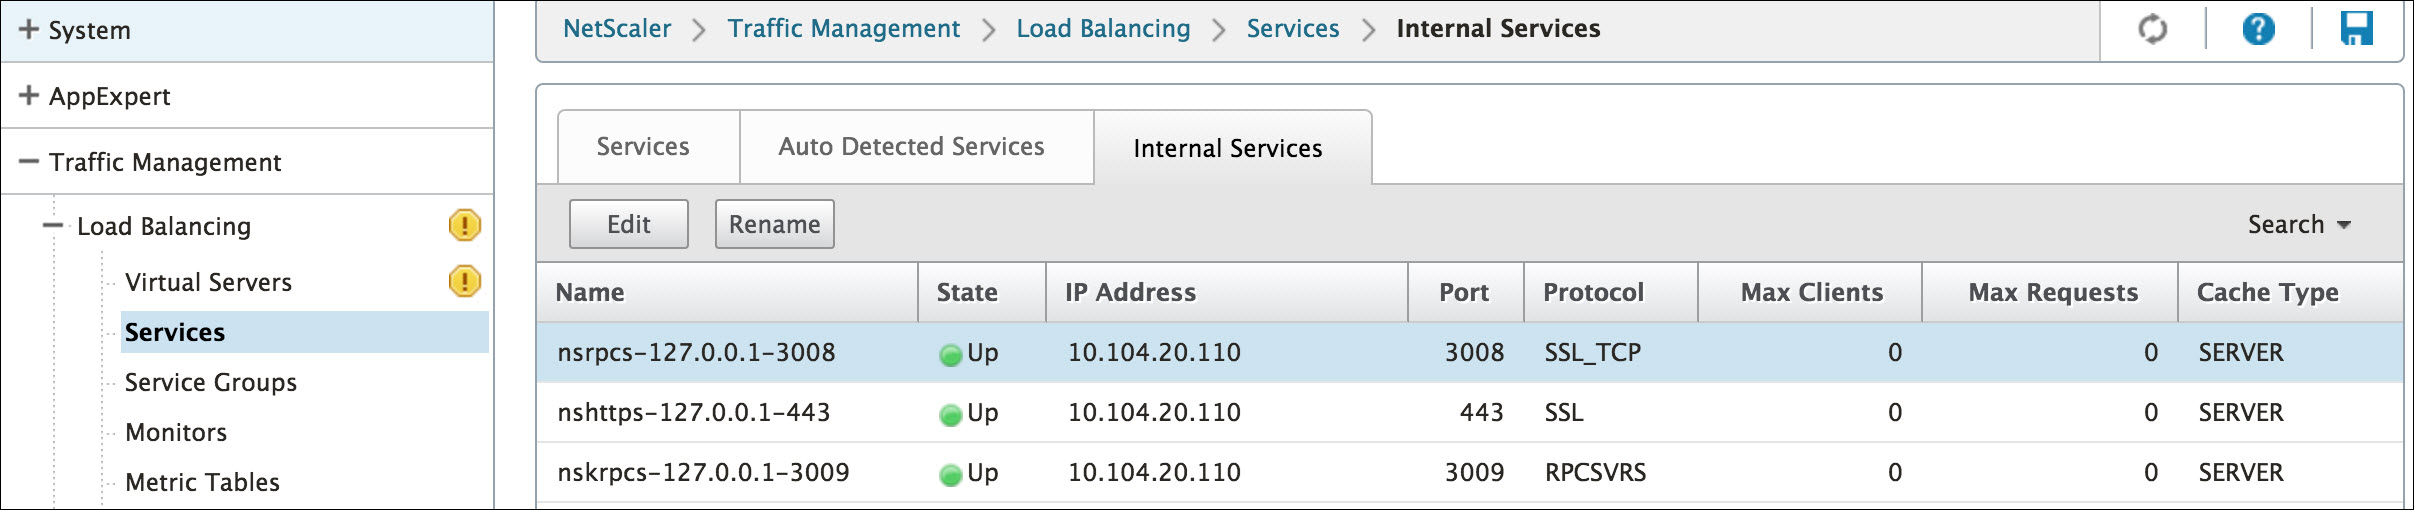 How to Replace the Default Certificate of a NetScaler